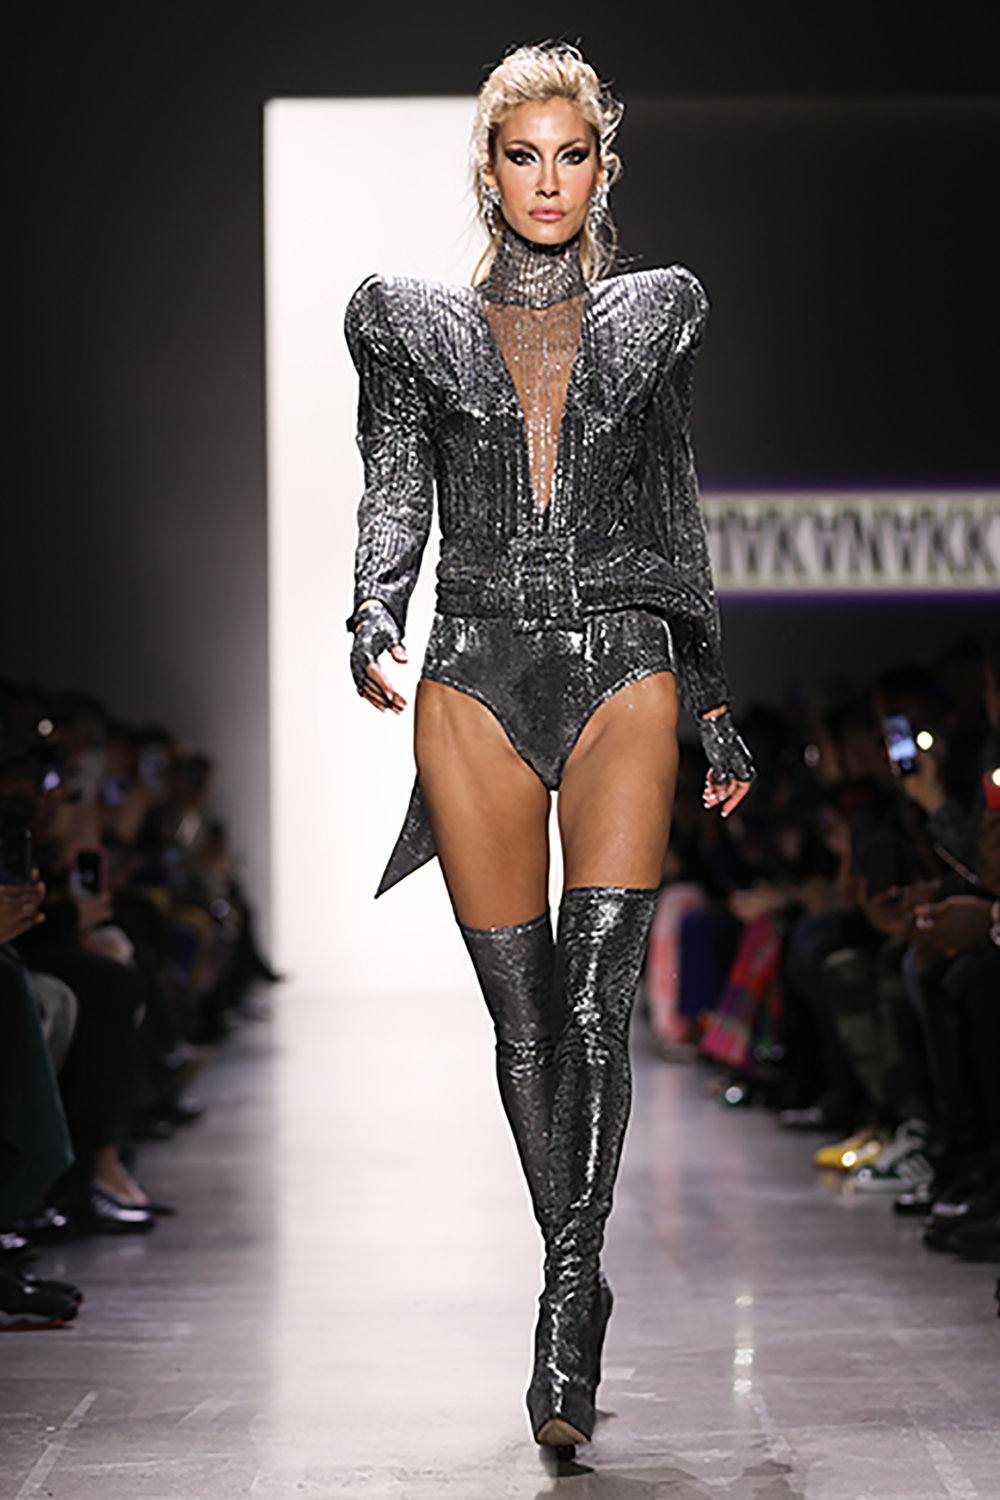 Hakan-Akkaya-NYFW-Fall-2019-01-300dpi-Photo-Credit-Elvia-Gobbo.jpg